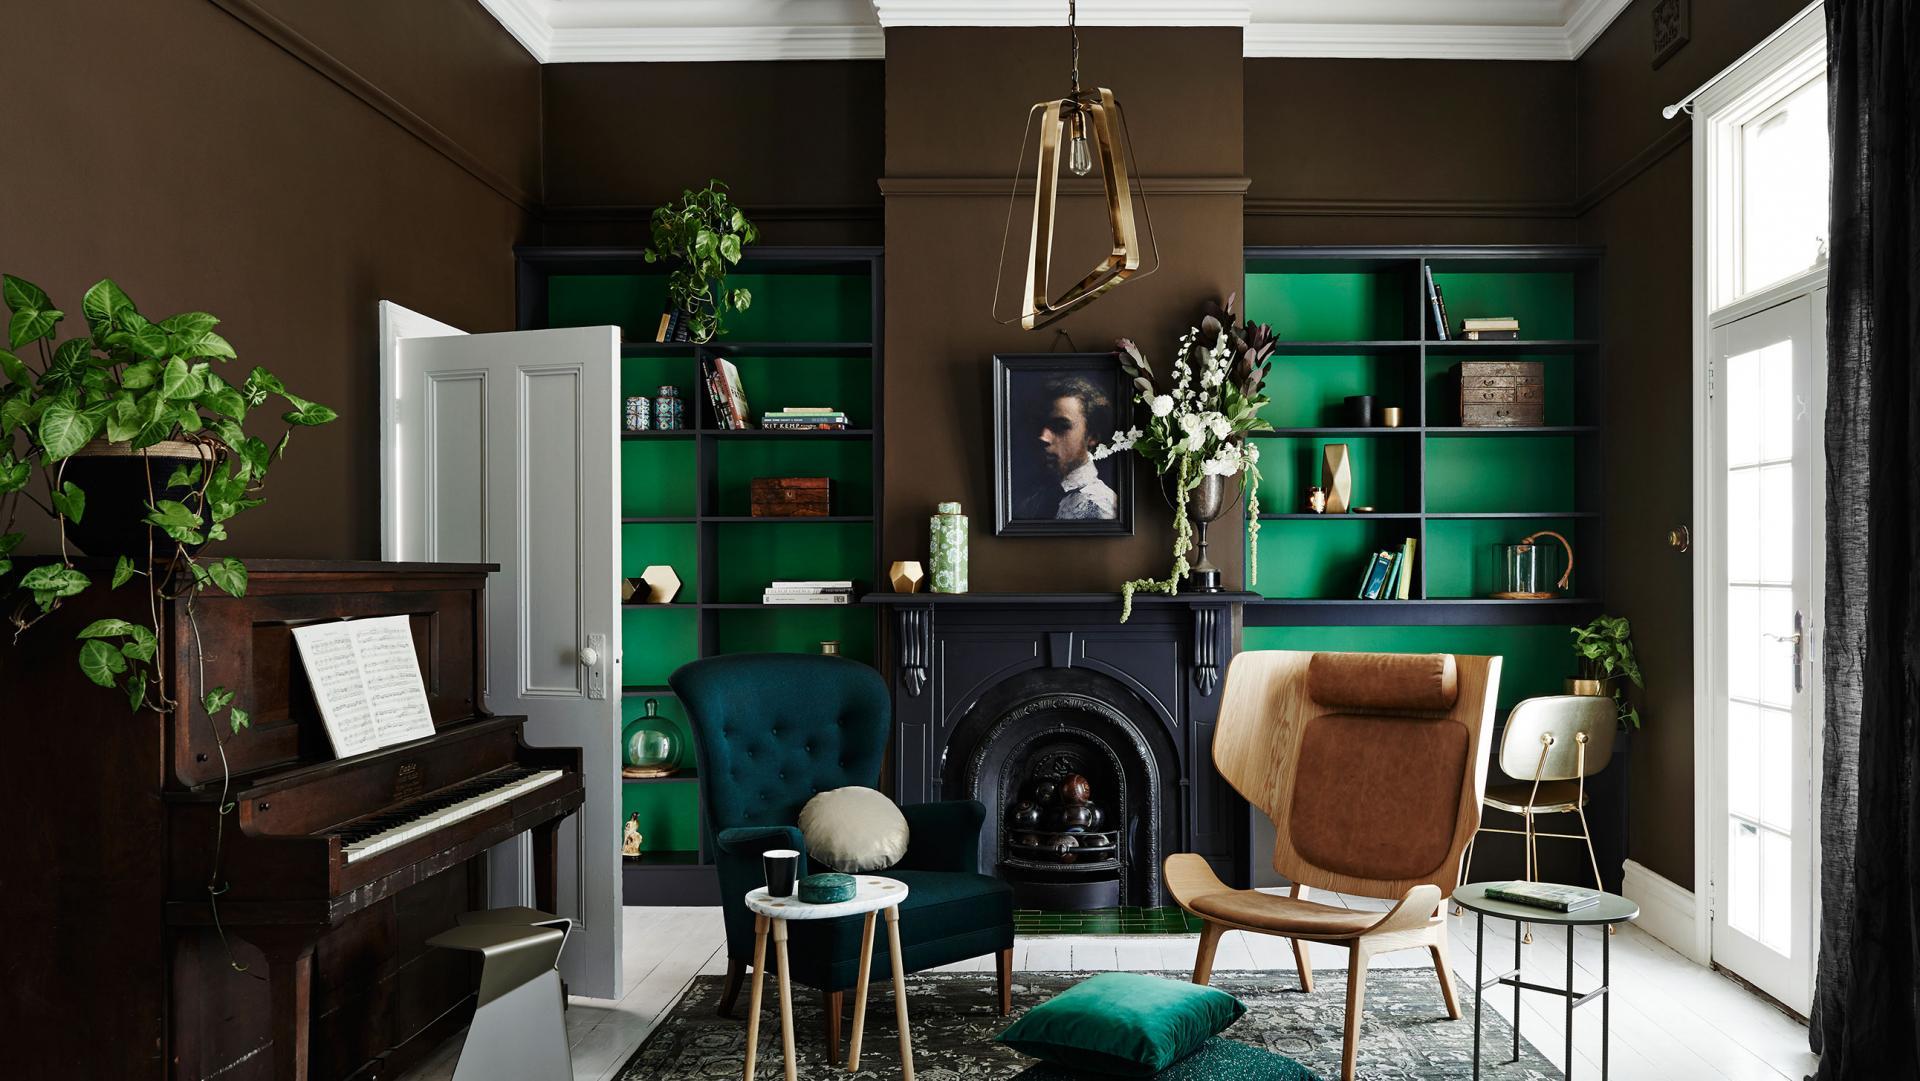 Interior Decor Trends for 2017: deep colors